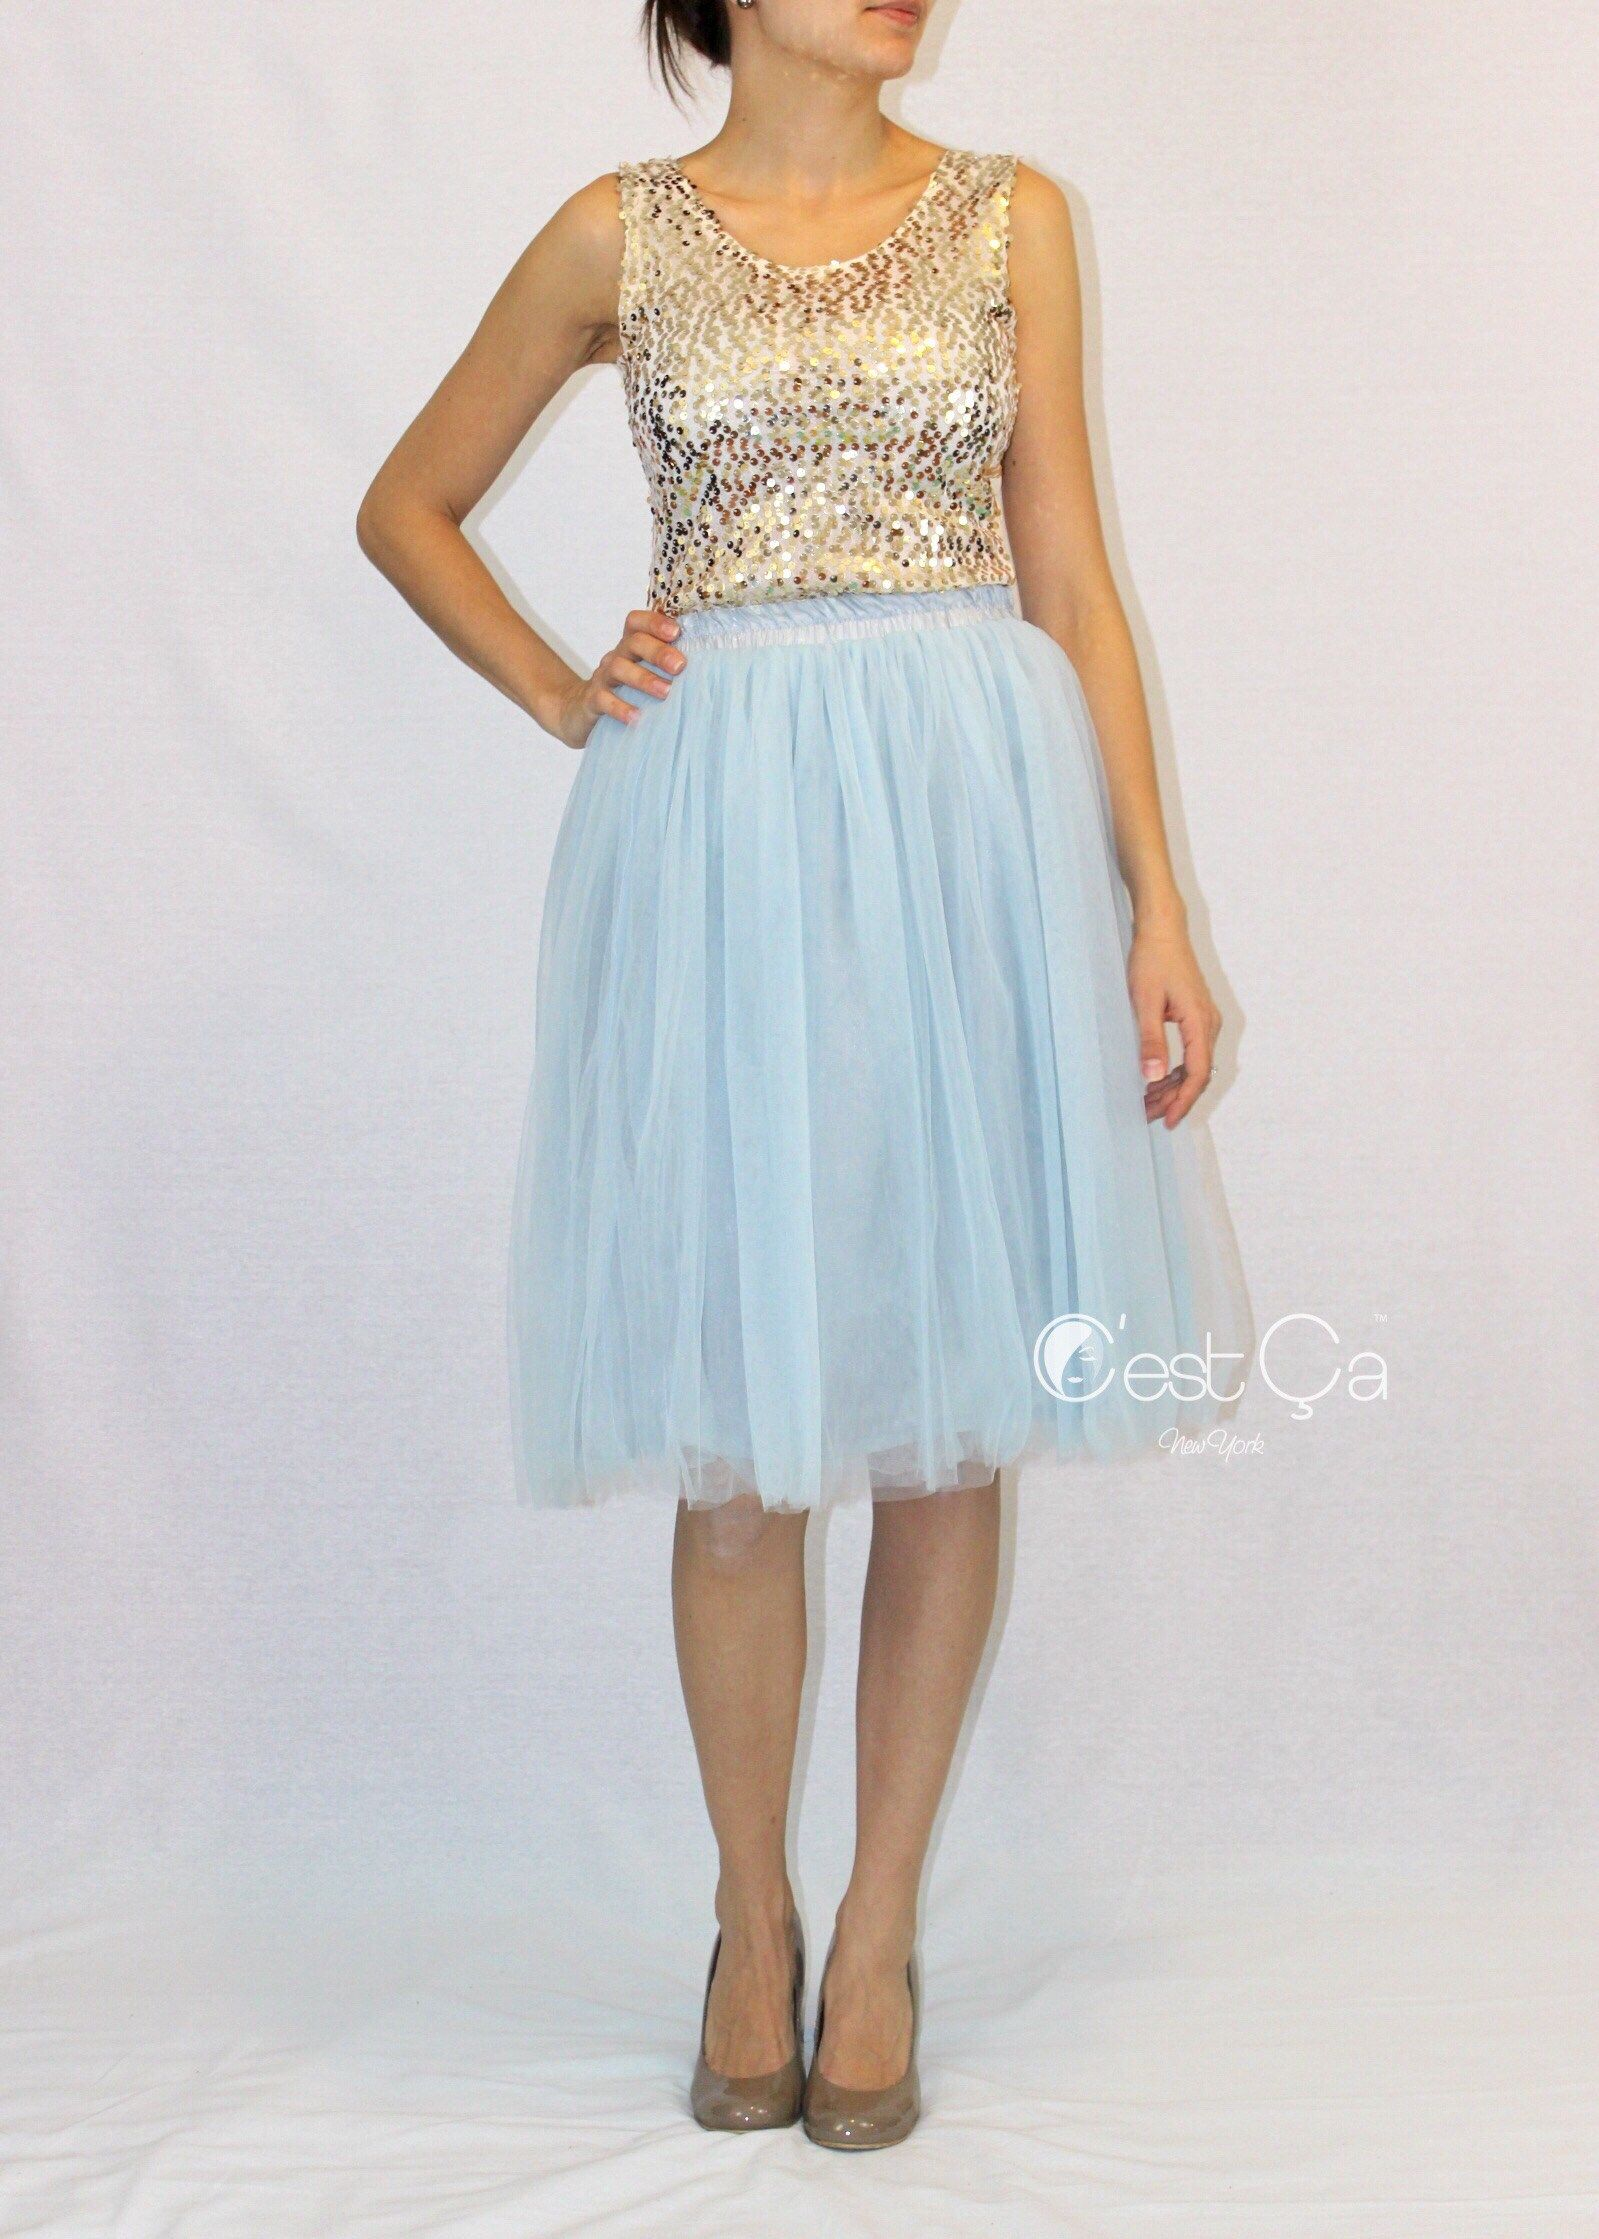 Claire Baby Blue Soft Tulle Skirt - Below Knee Midi | Blue tulle ...